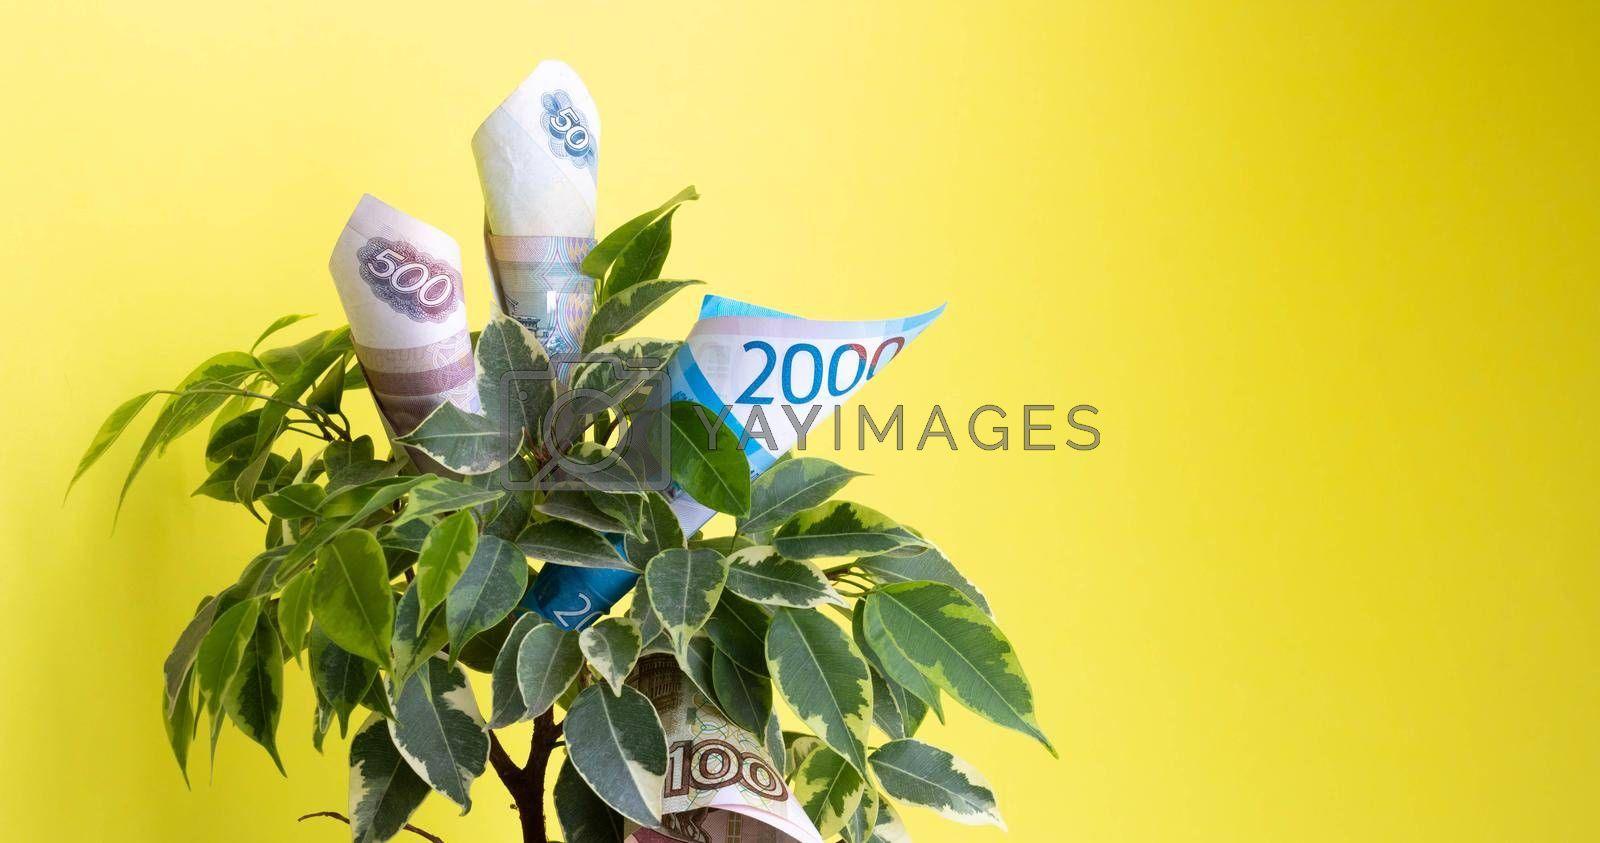 Ruble bills lie in a green ficus on a yellow background. The concept of money growth.